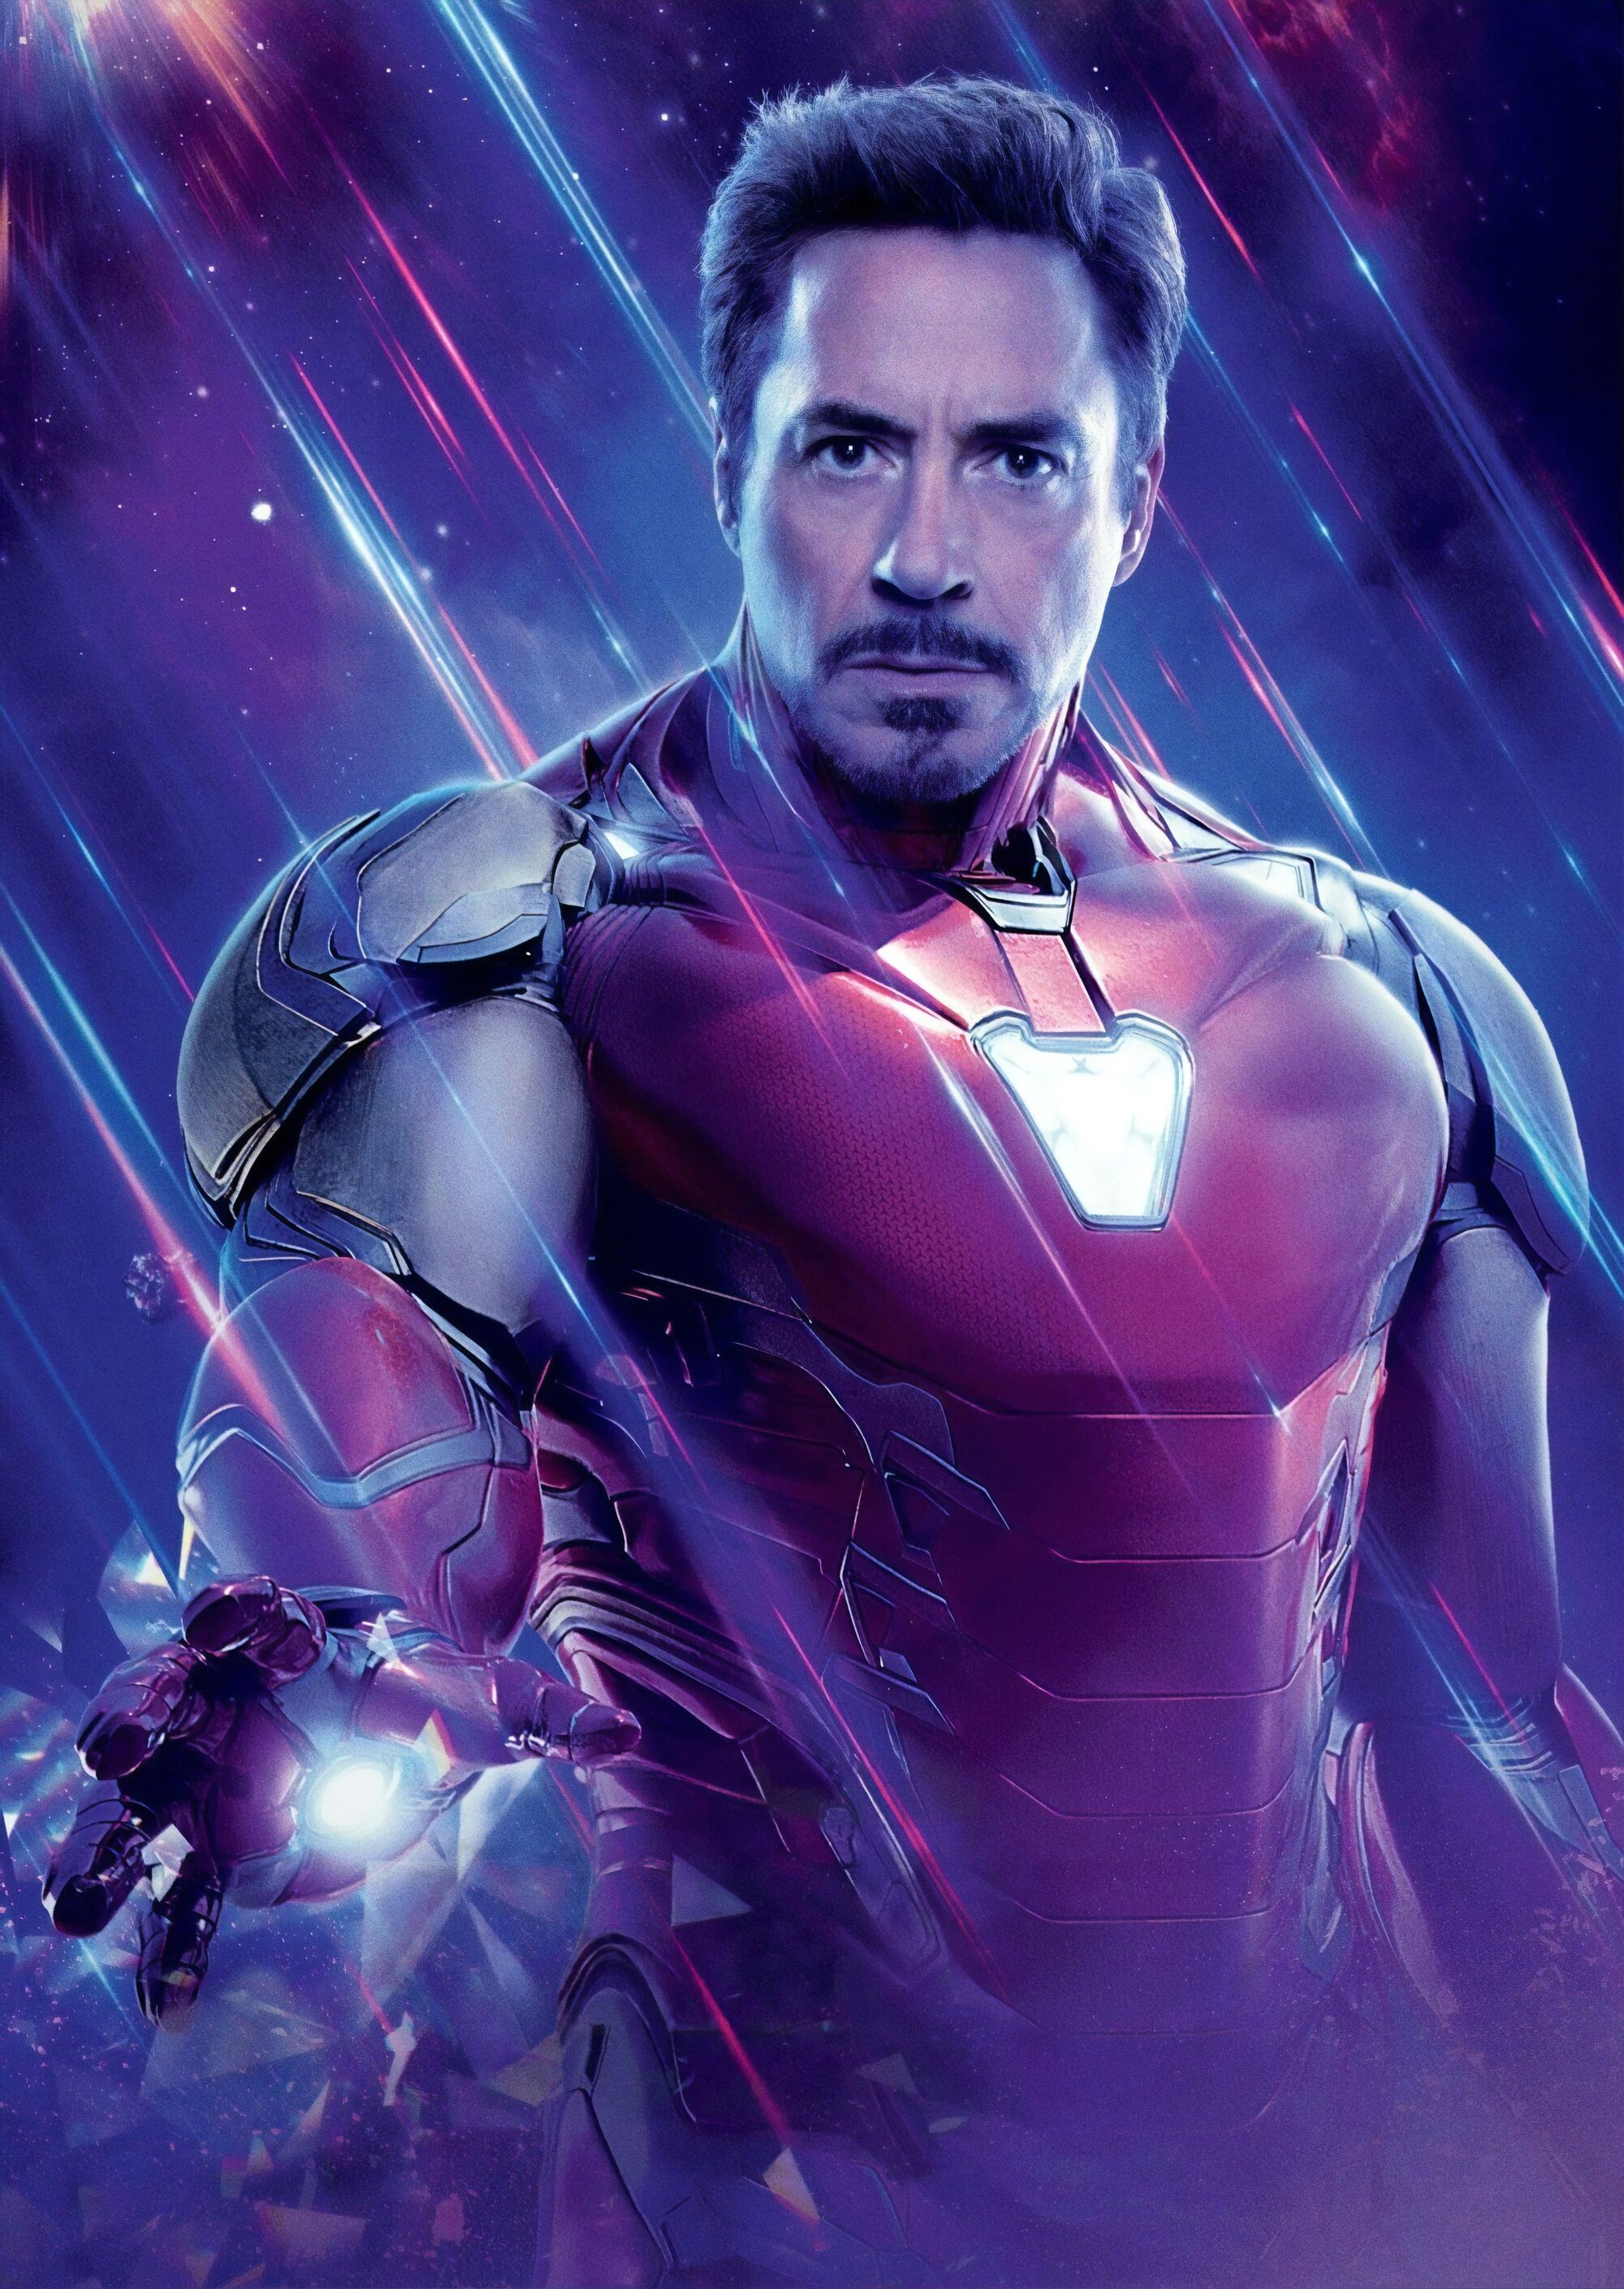 Iron Man (Marvel Cinematic Universe)